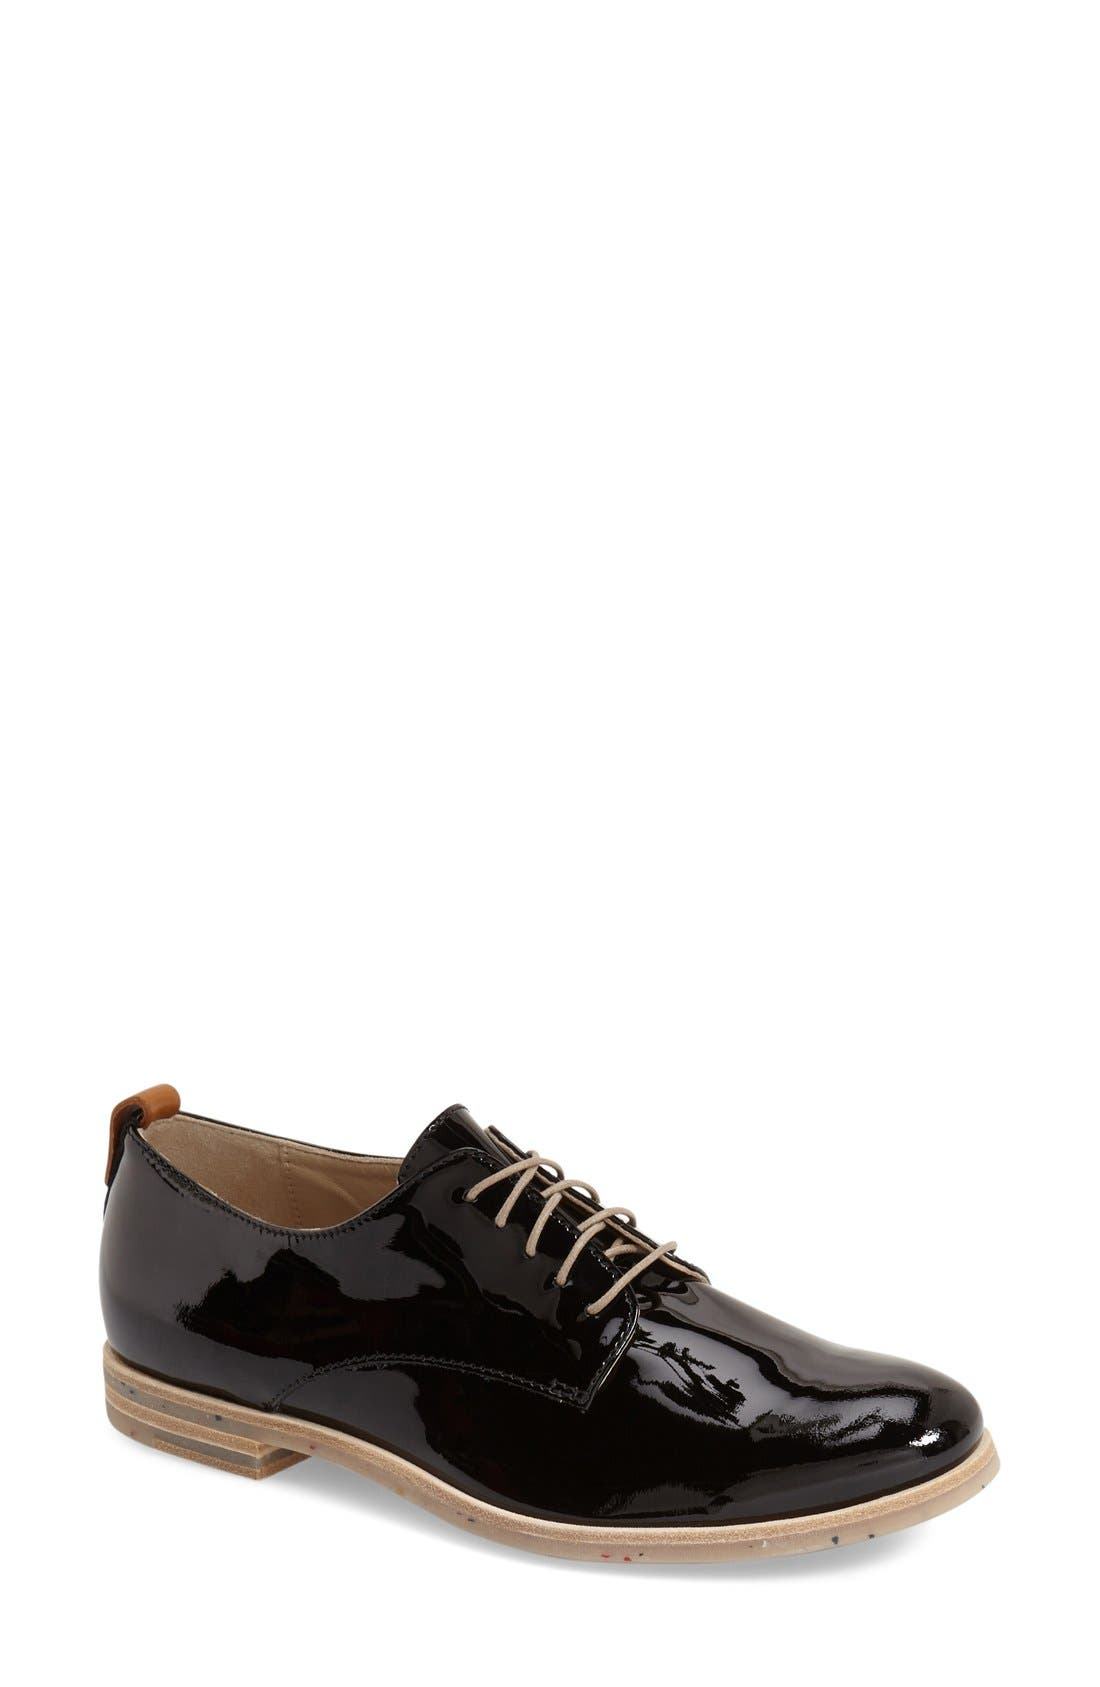 Main Image - AGL Double Sole Oxford (Women)